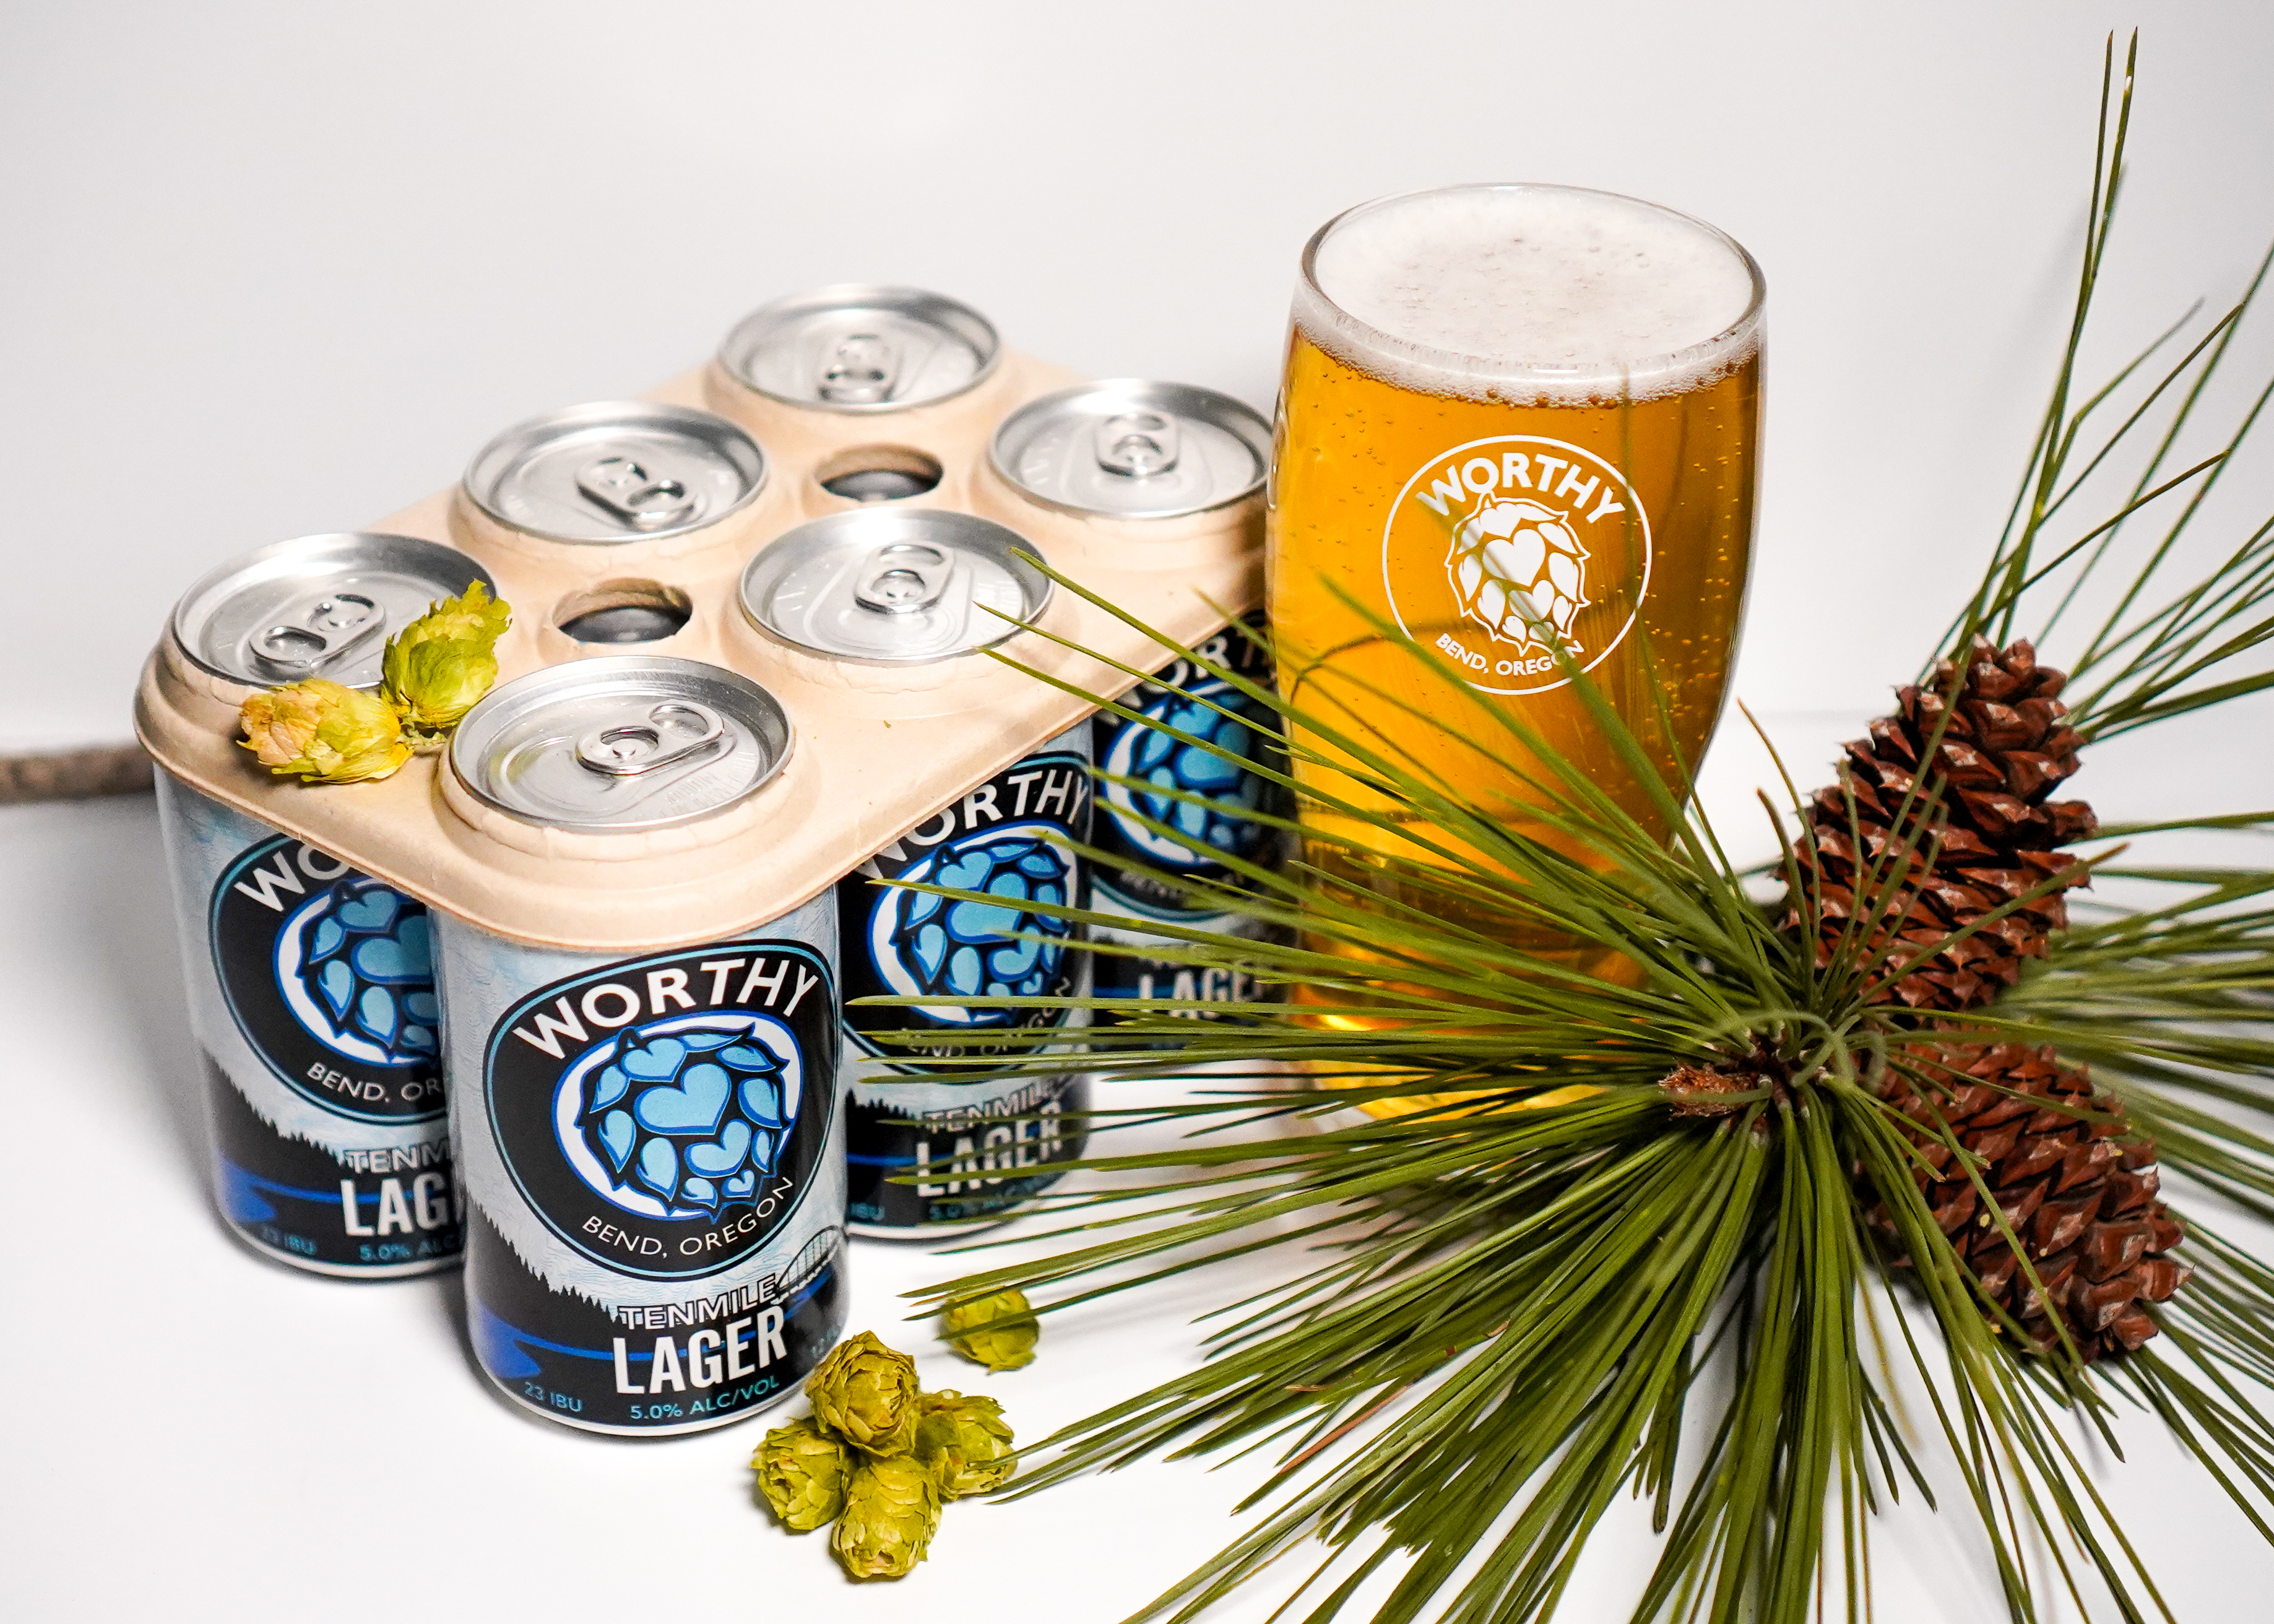 image of Tenmile Dry Hopped Lager courtesy of Worthy Brewing